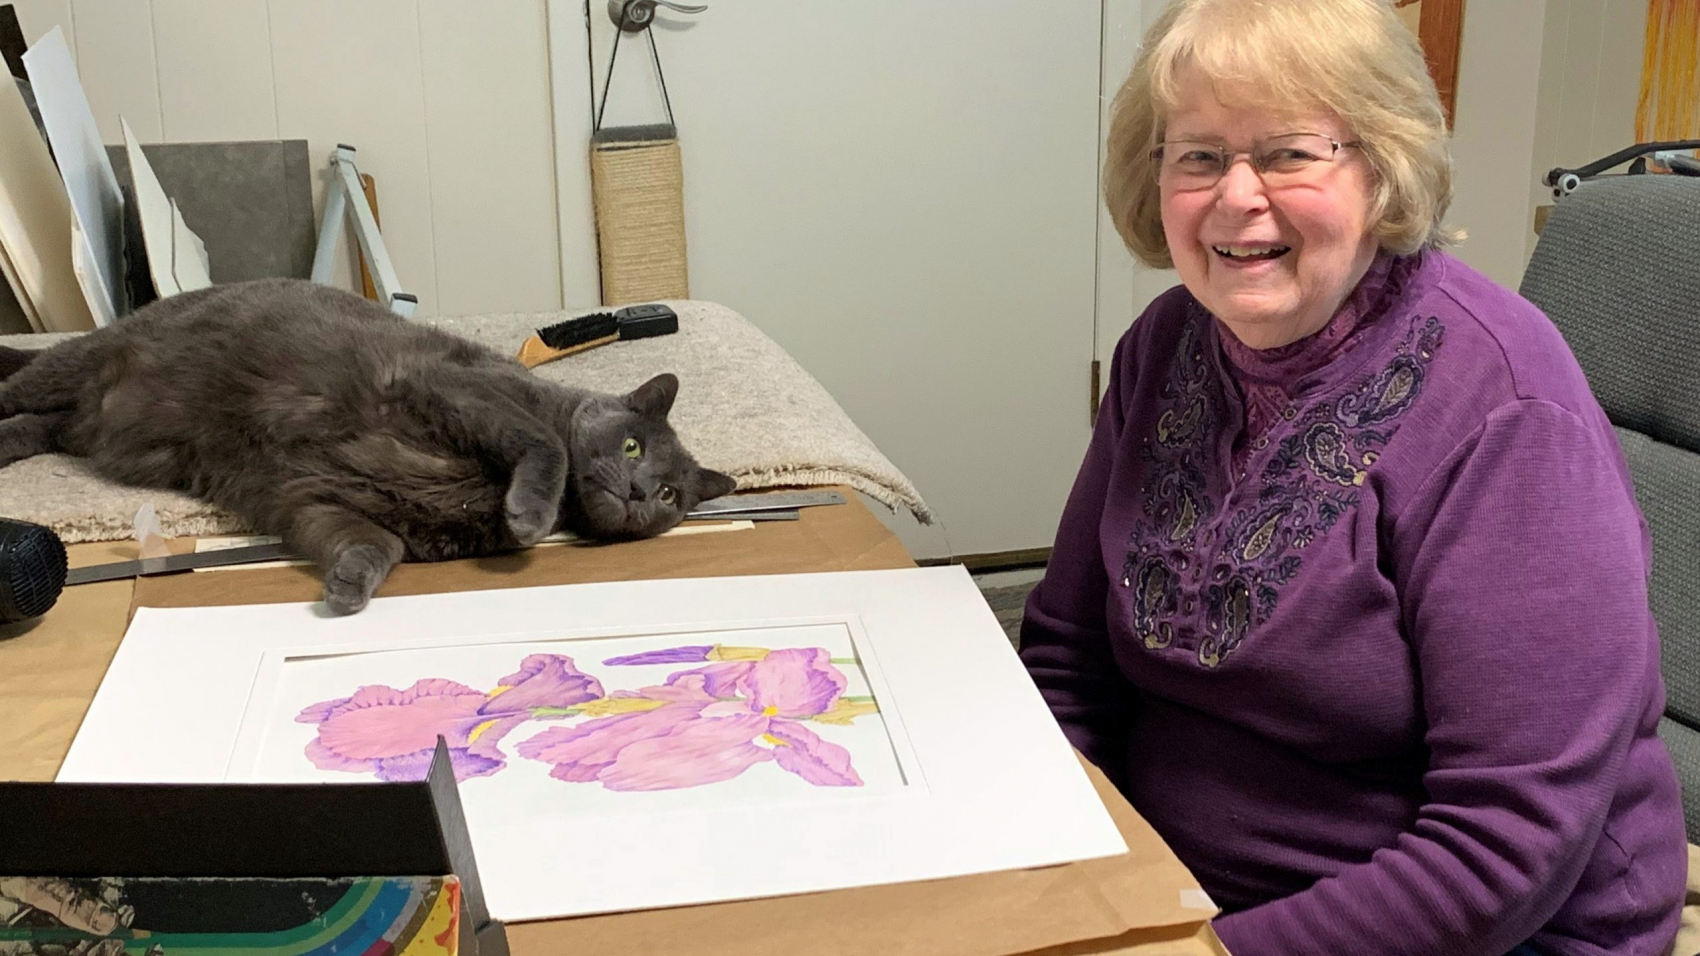 Betty works in her studio at home with Bobo the cat.